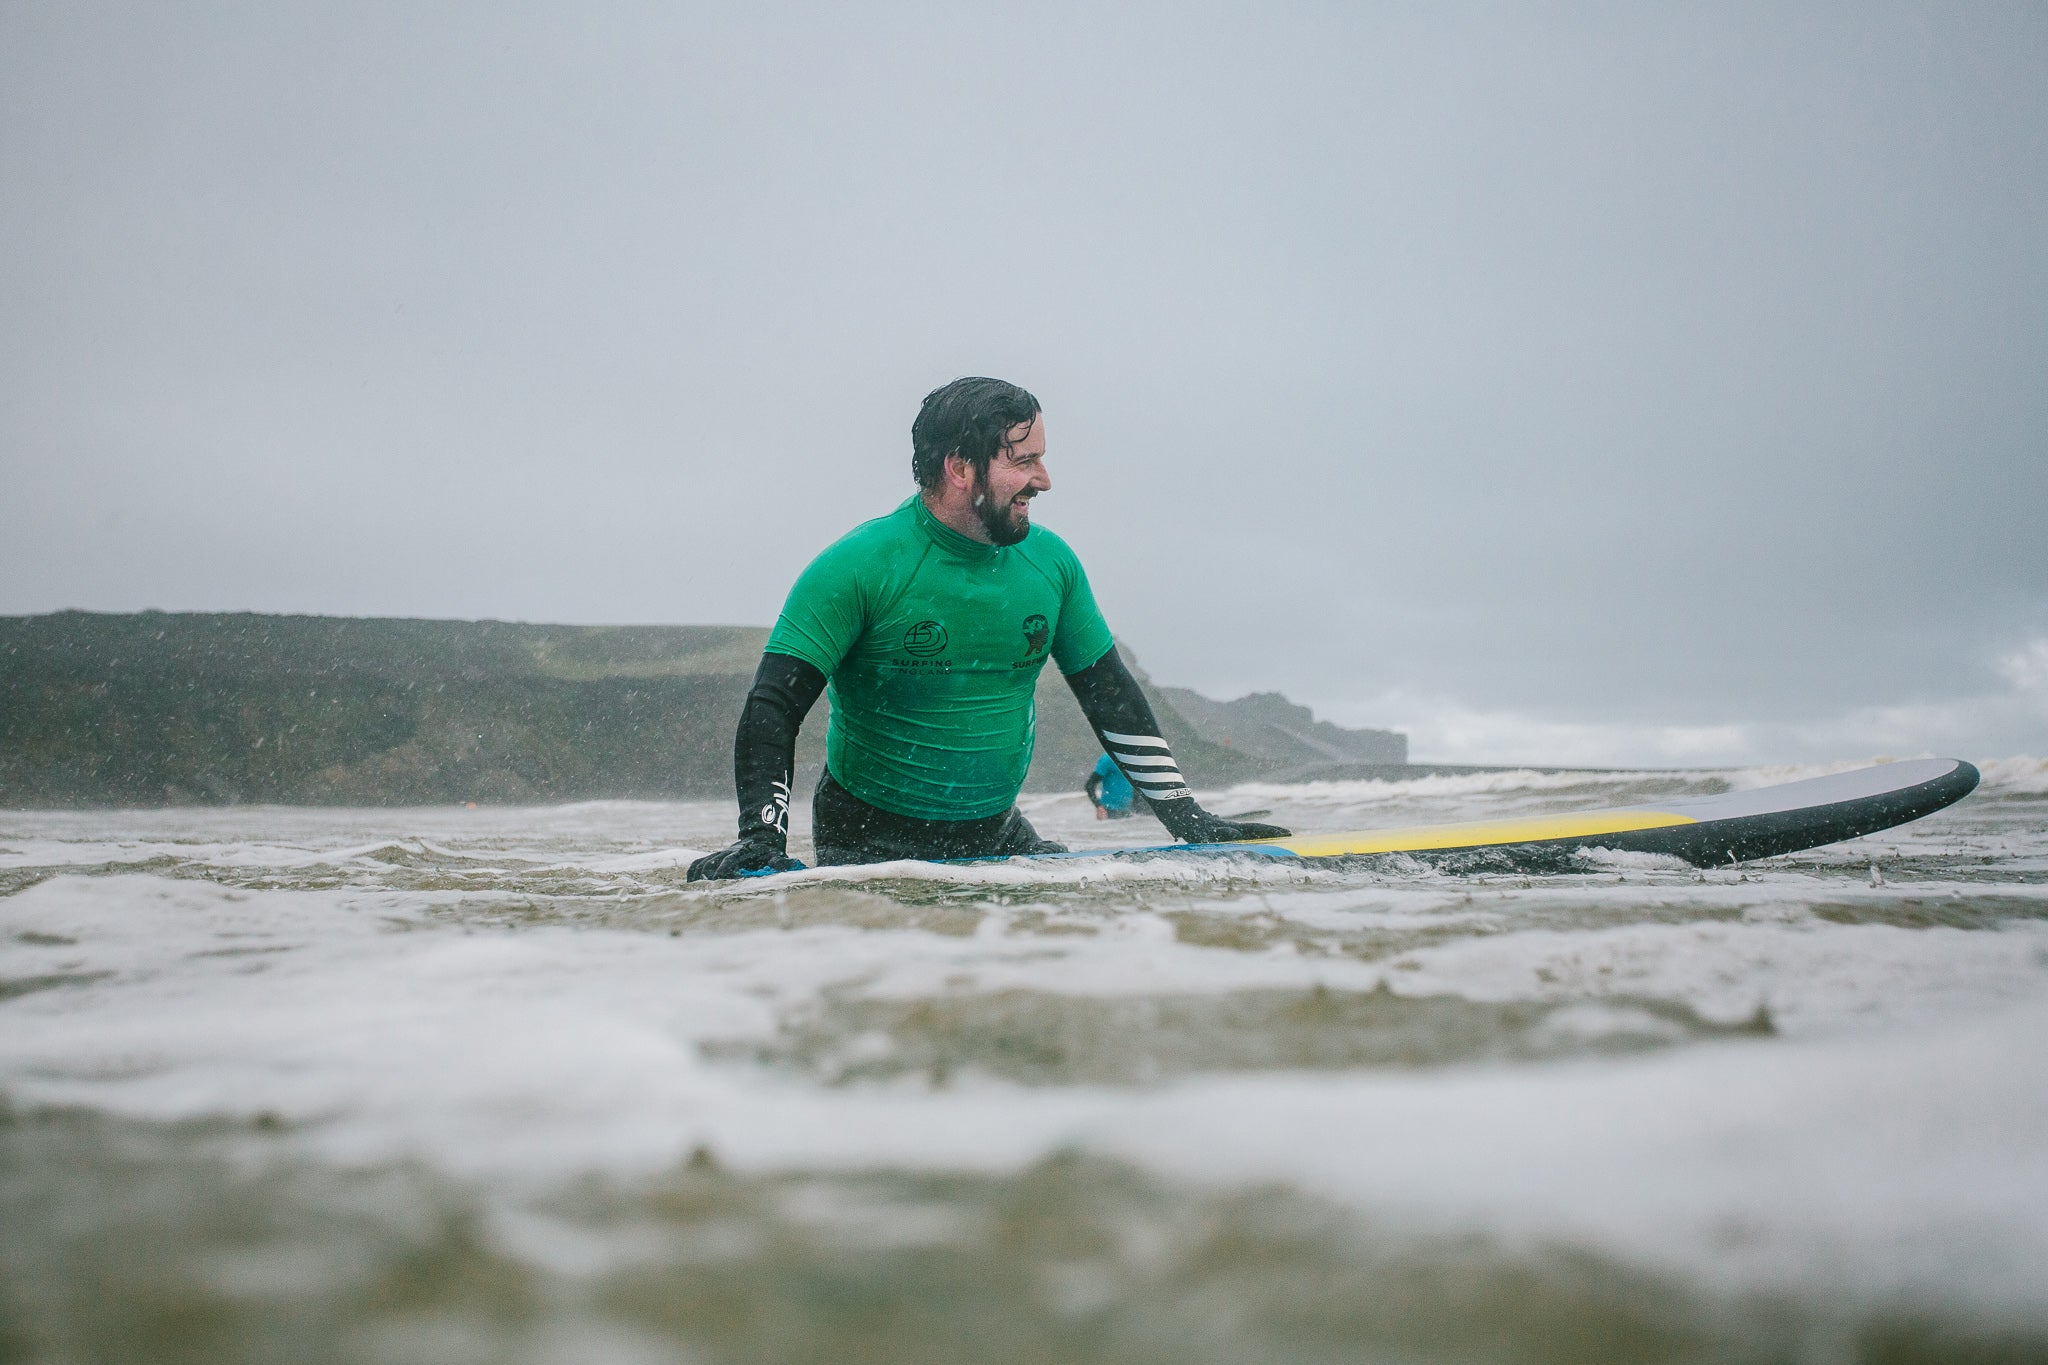 Surf instructor in the water holding a surfboard